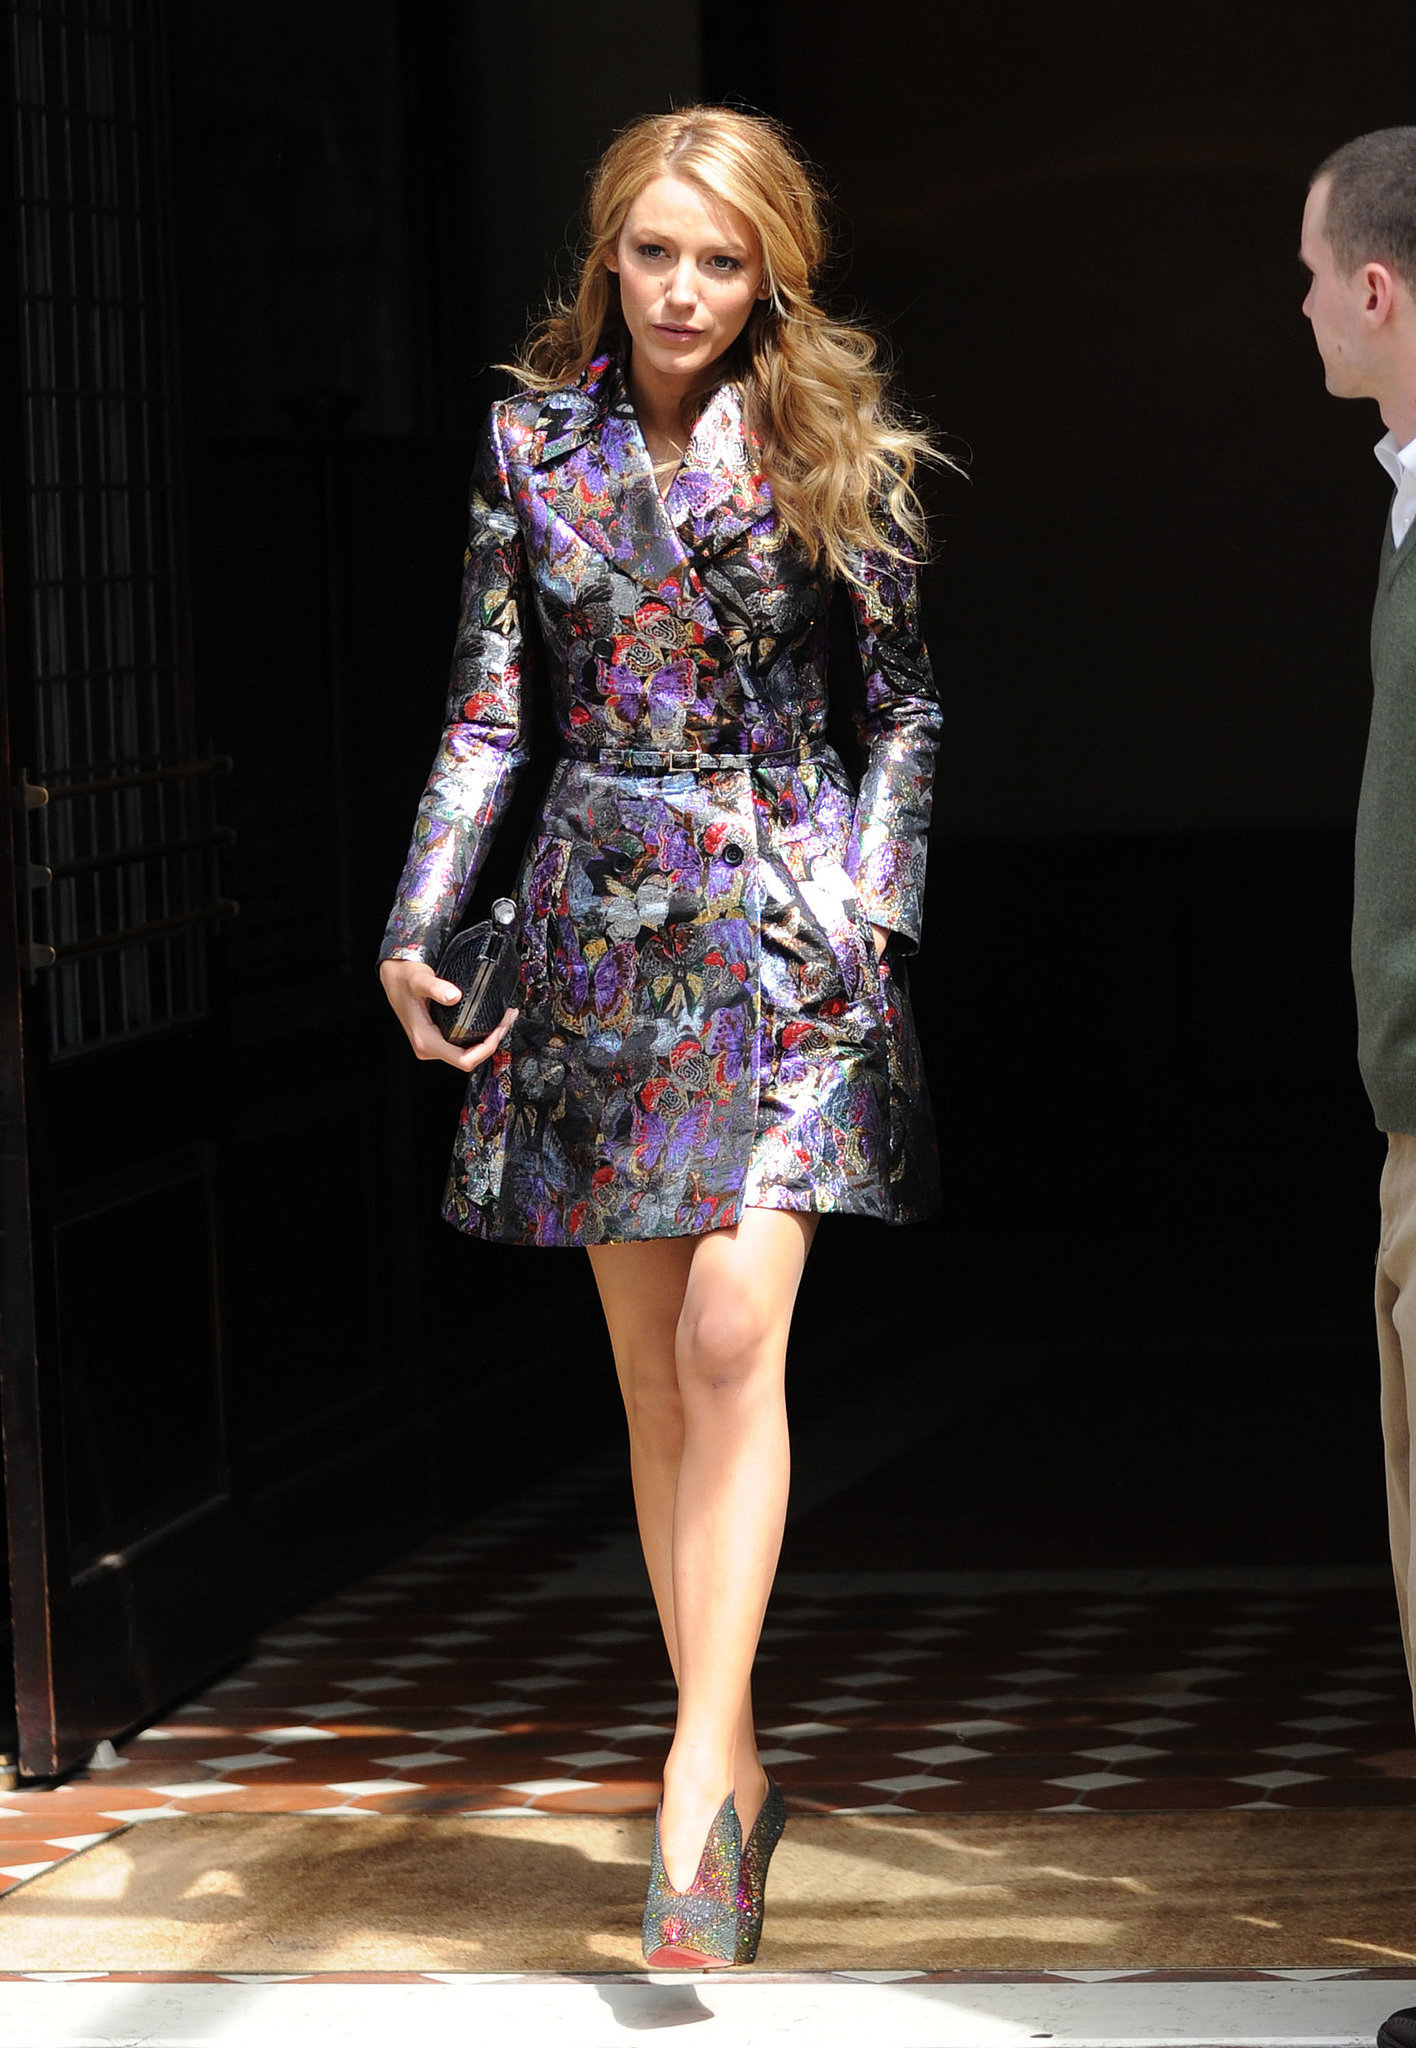 Blake Lively Continues to Shine in the Big Apple